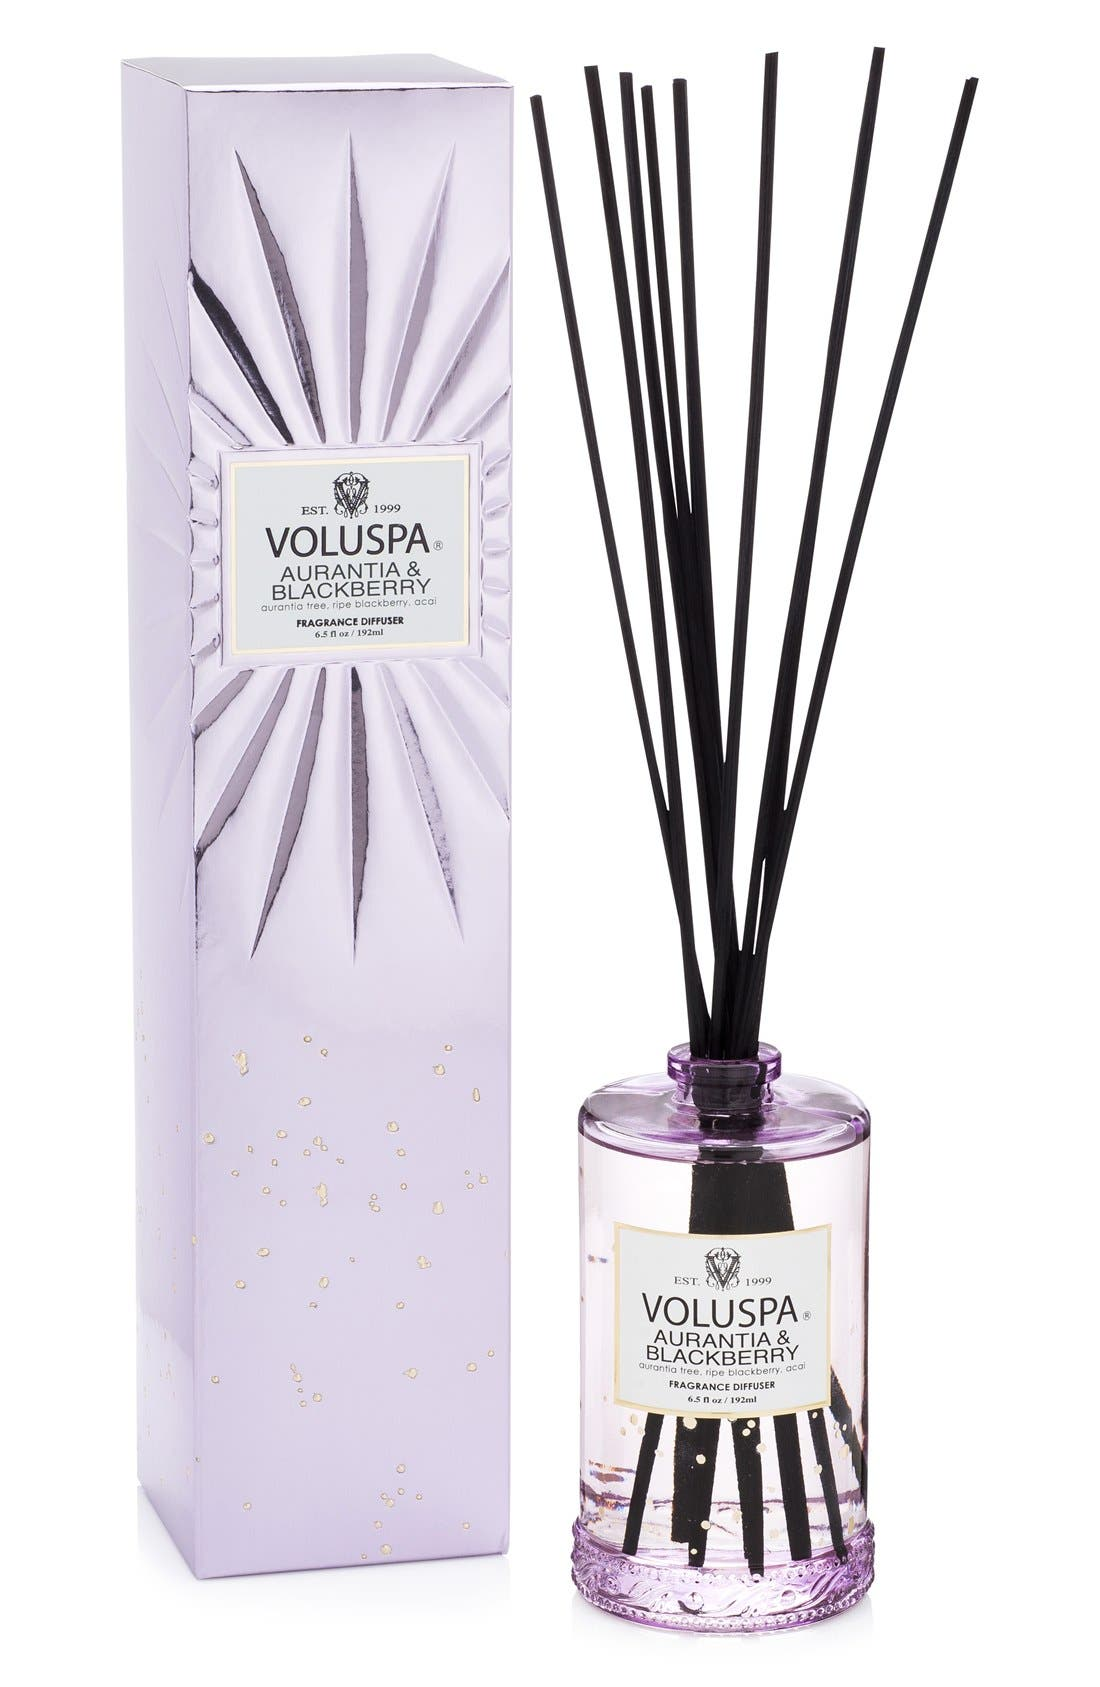 Alternate Image 1 Selected - Voluspa Vermeil - Aurantia & Blackberry Home Ambience Diffuser